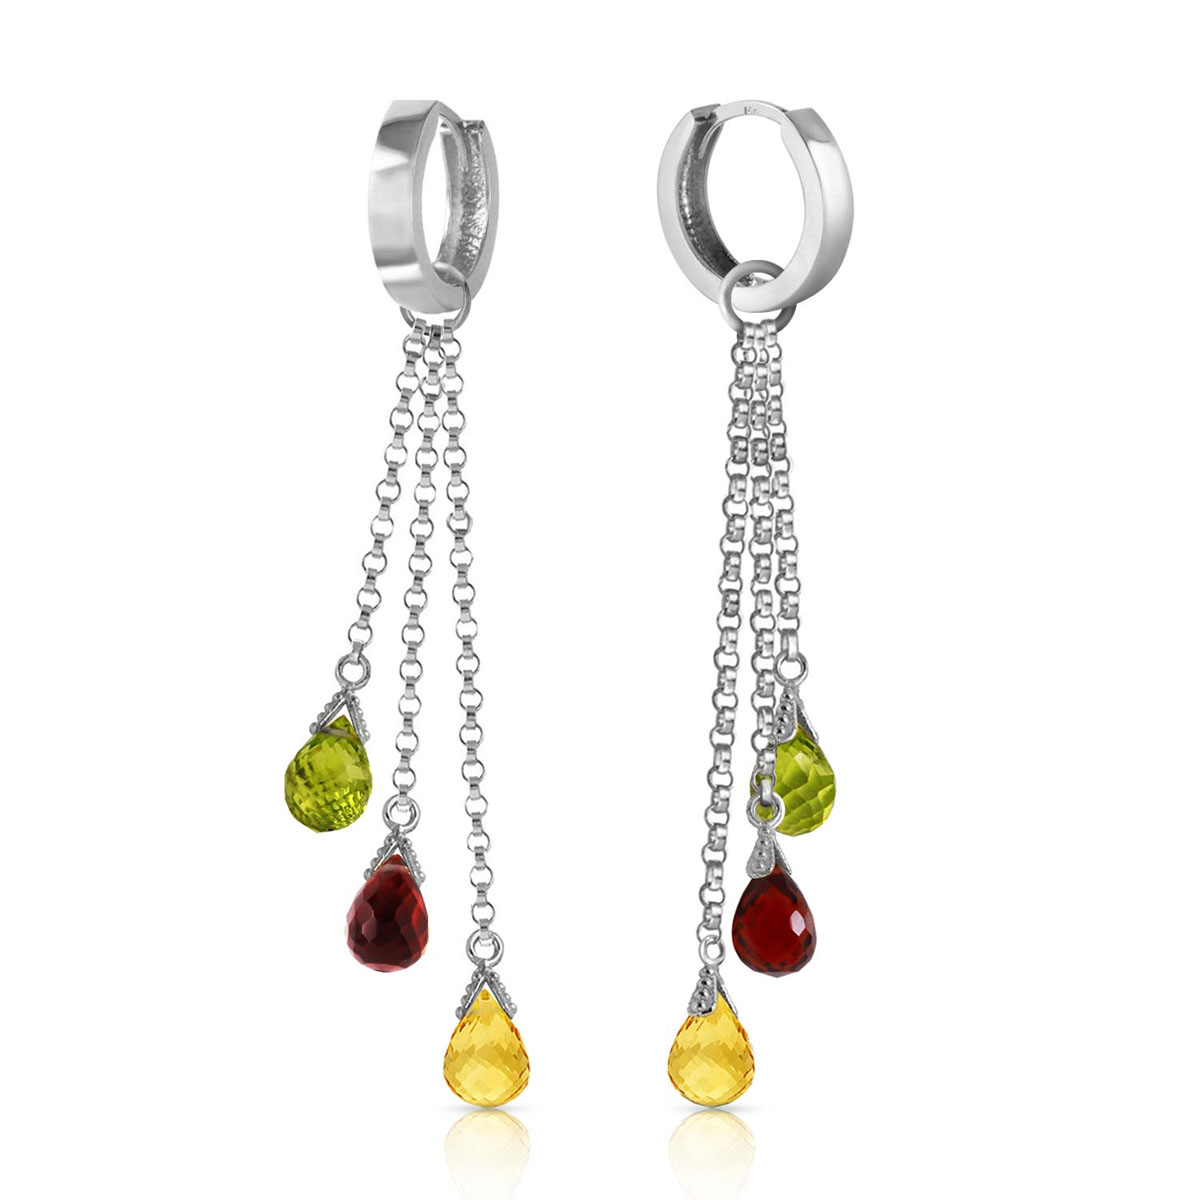 Gemstone Trilogy Droplet Earrings 2.1 ctw in 9ct White Gold